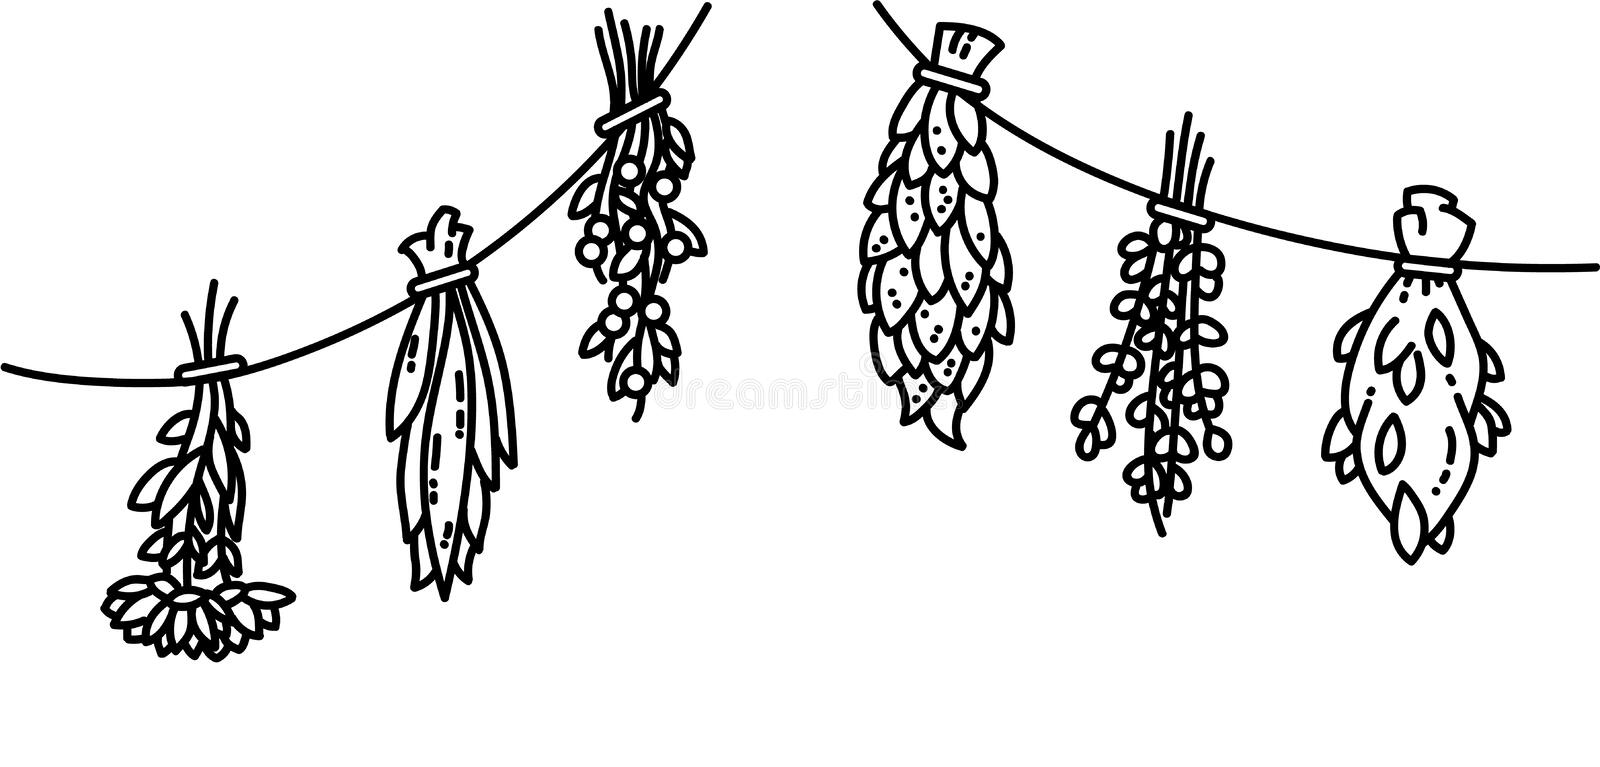 Dried herbs flat vector style black and white ornament stock illustration